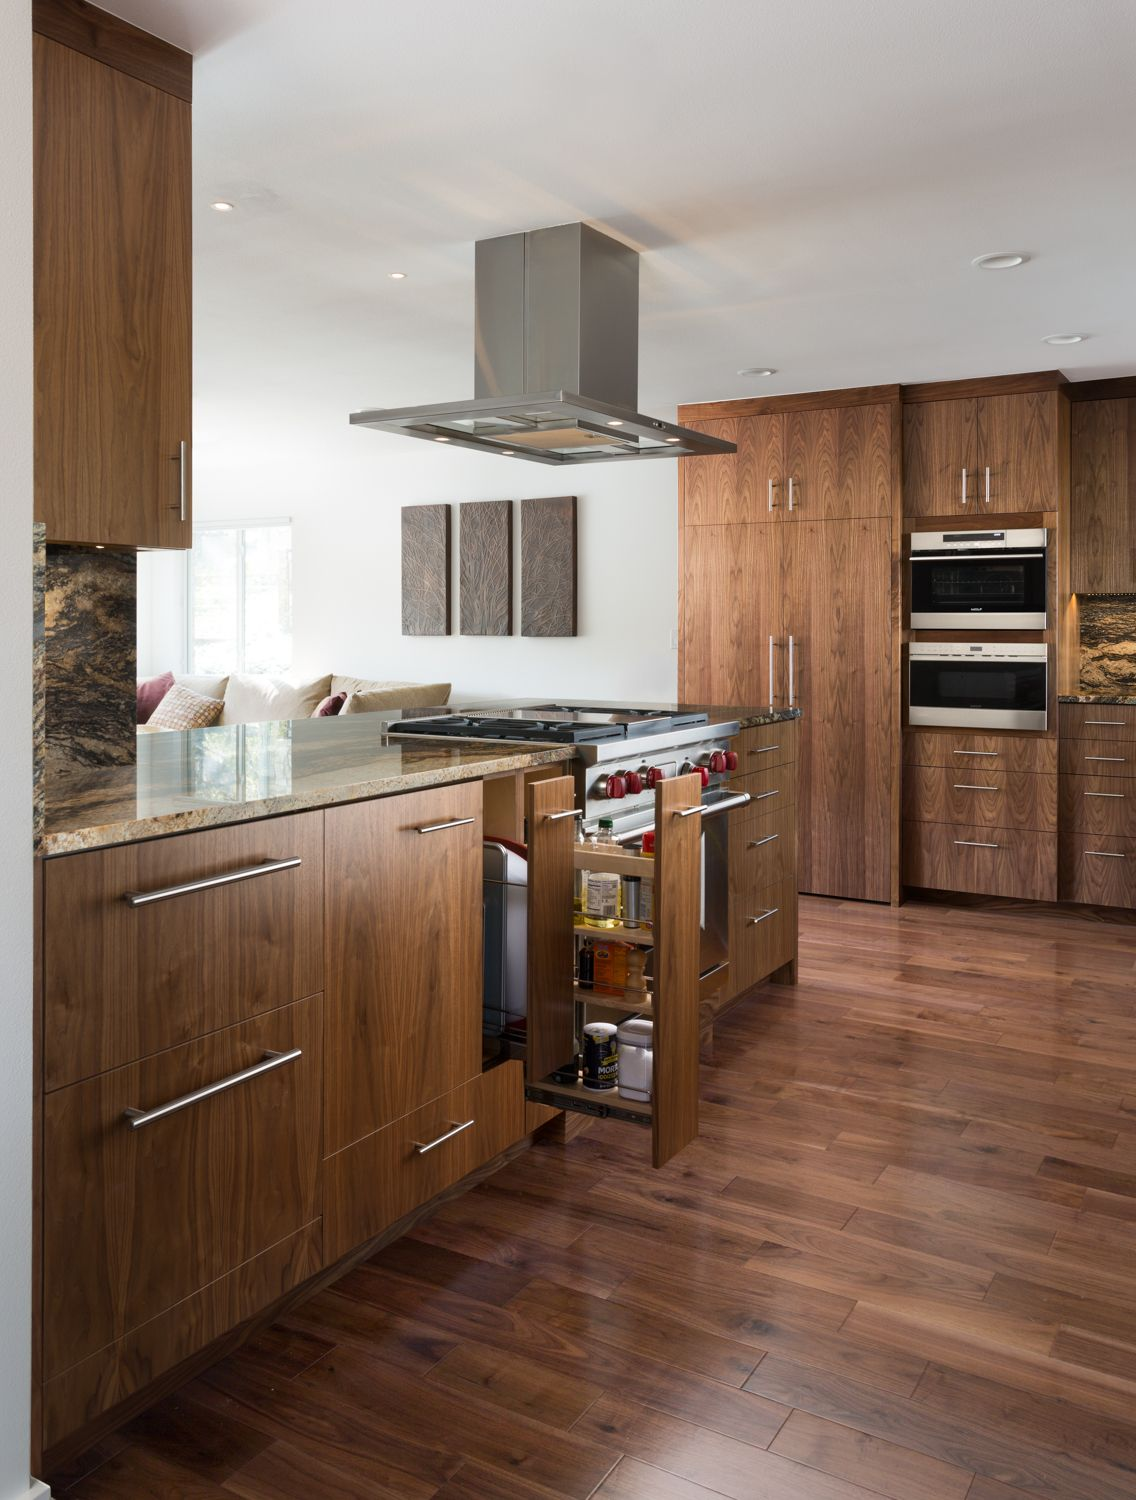 Kitchen Remodel By Jameson Interiors Featuring Gorgeous Walnut Cabinetry And Built In Subzerowolf Appliances With Images Kitchen Remodel Contemporary Kitchen Kitchen